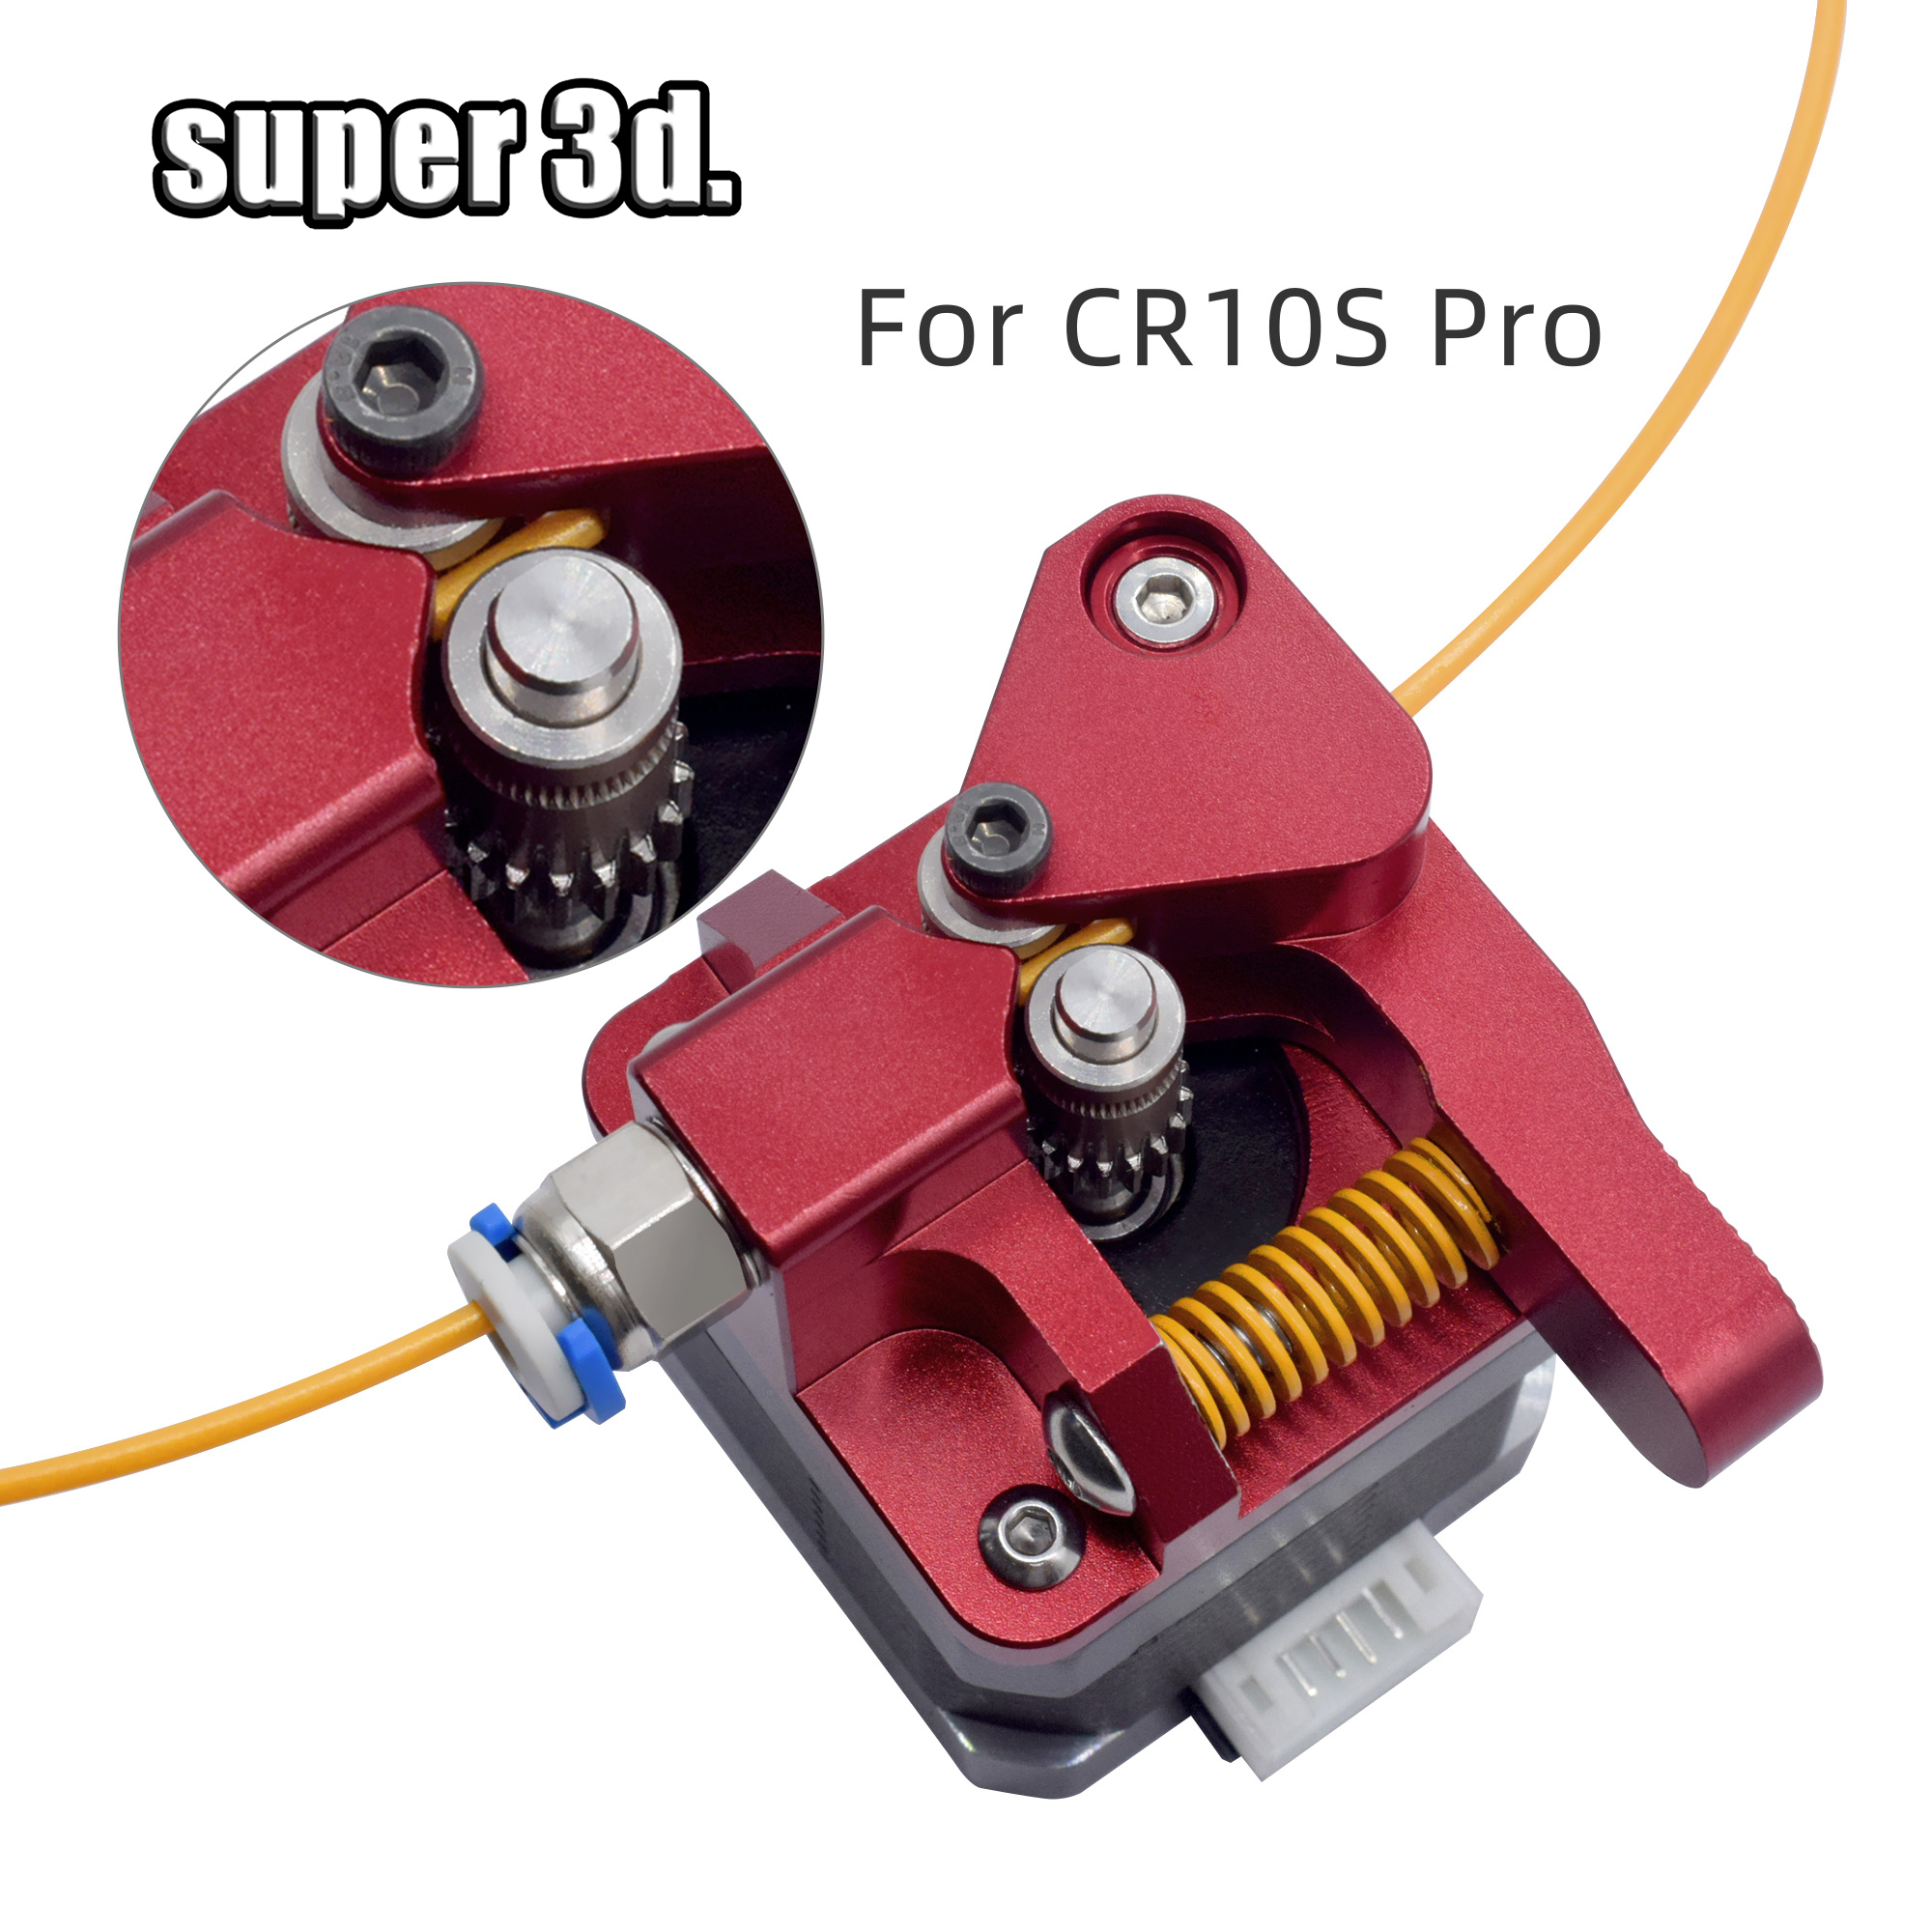 Cr10 Aluminum Upgrade Dual Gear Mk8 Metal Extruder Kit For CR10S PRO Ender3 RepRap 1.75mm 3d Printer Feed Double Pulley Extruder